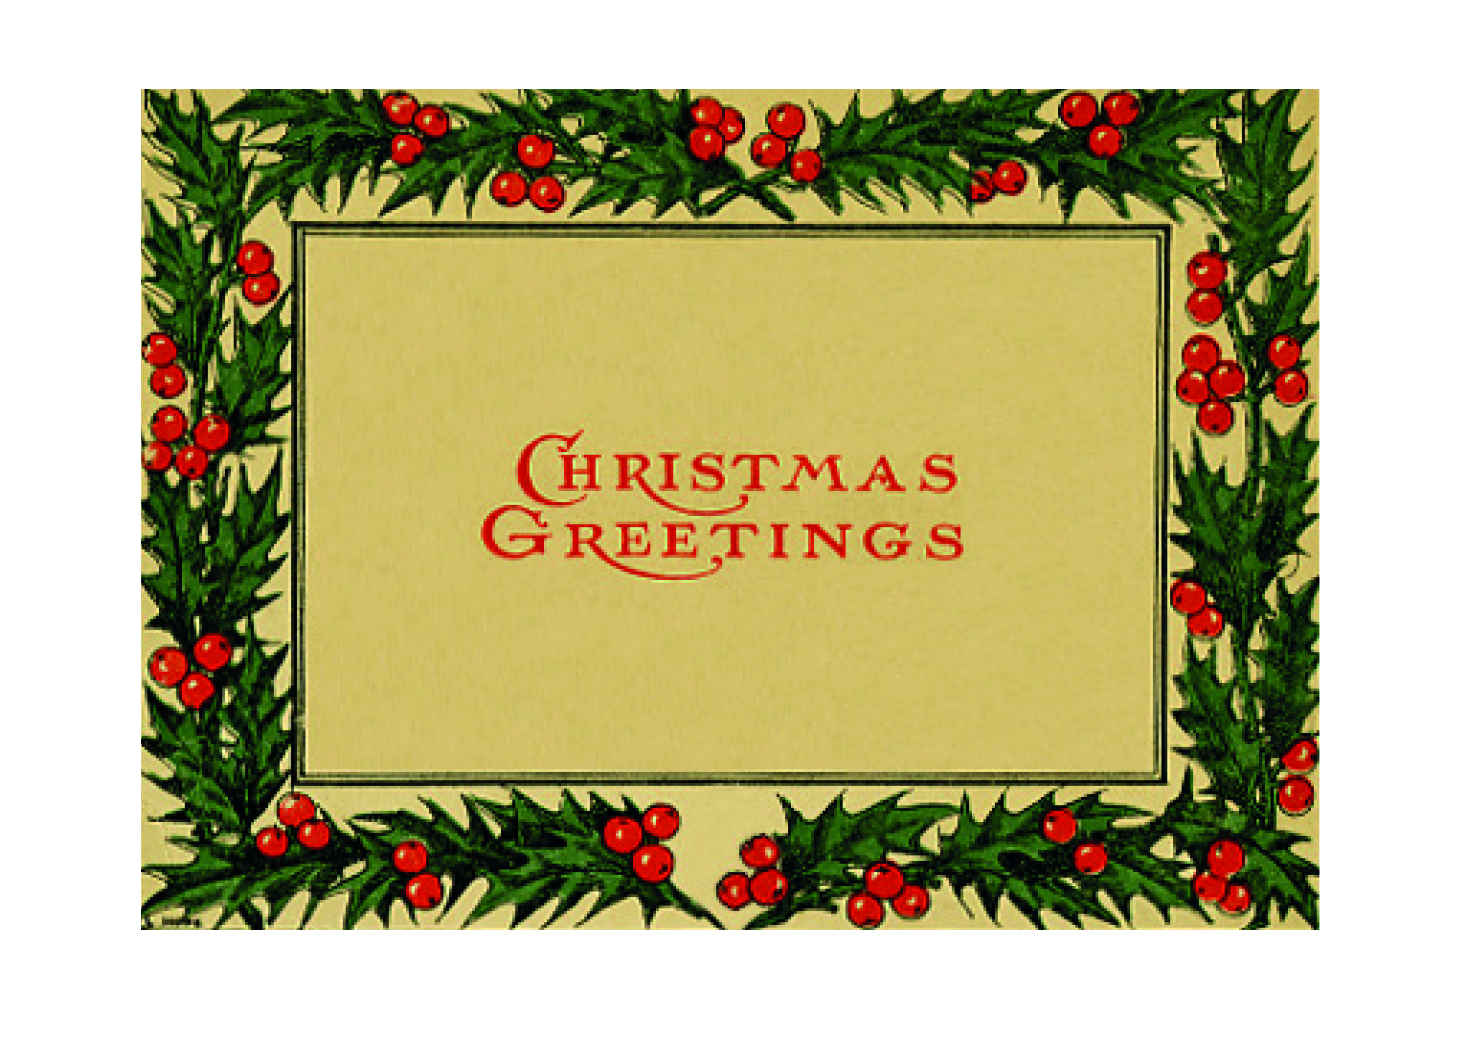 1718-01785 Record Office Xmas Card 1 Holly Border.jpg